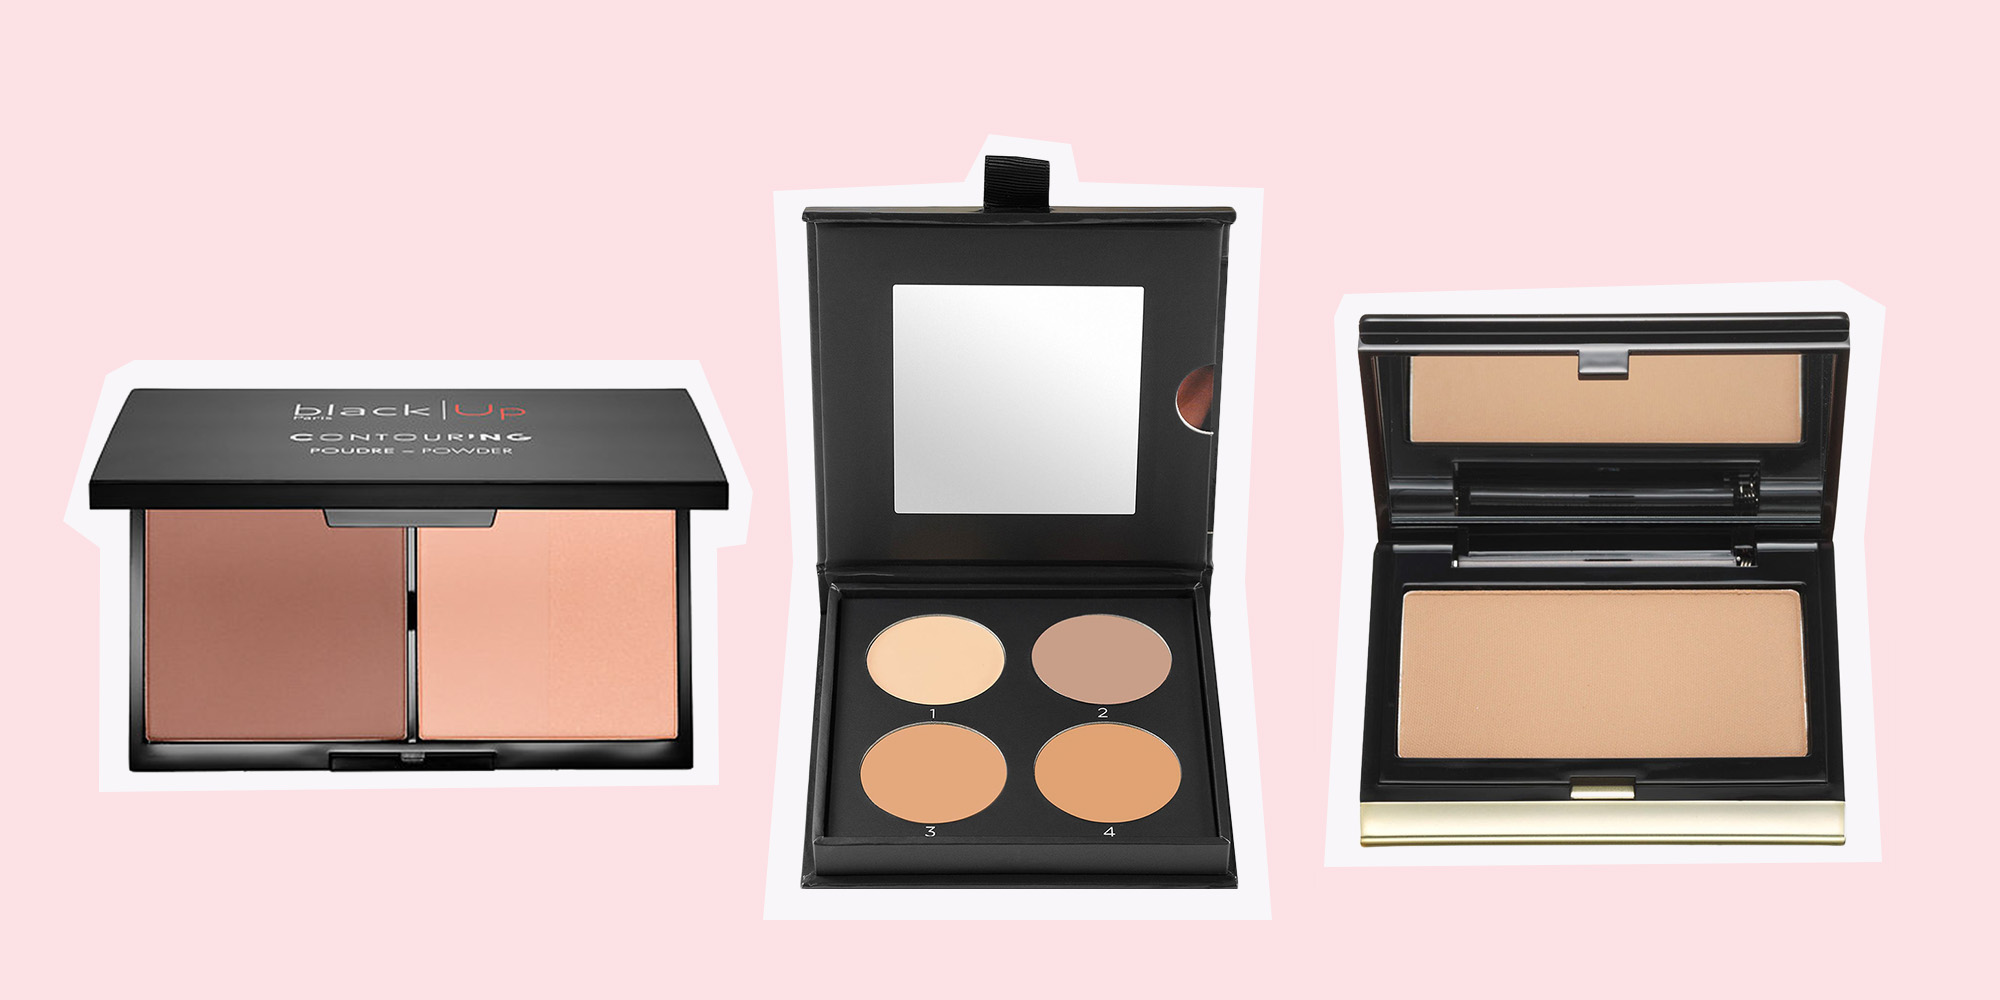 Best Contour Makeup Palettes For Every Skin Tone From Fair